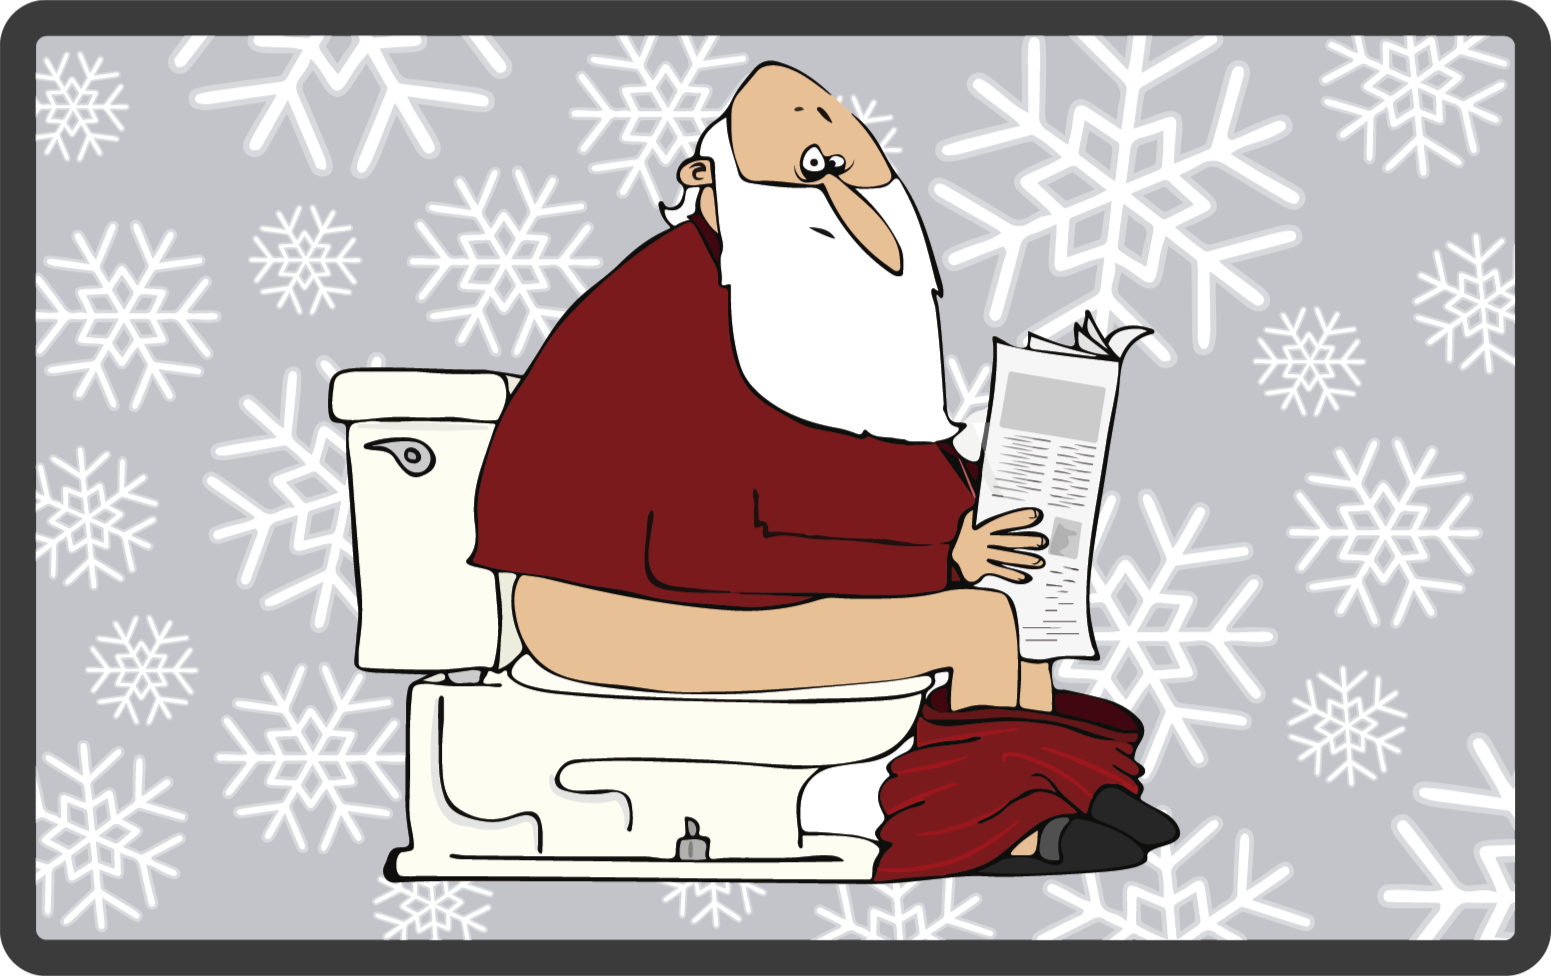 TenStickers. Santa on the toilet cartoon Christmas rug. A funny santa sitting on the toilet holding a newspaper vinyl rug with snowflakes on the background to give your bathroom an original decoration.